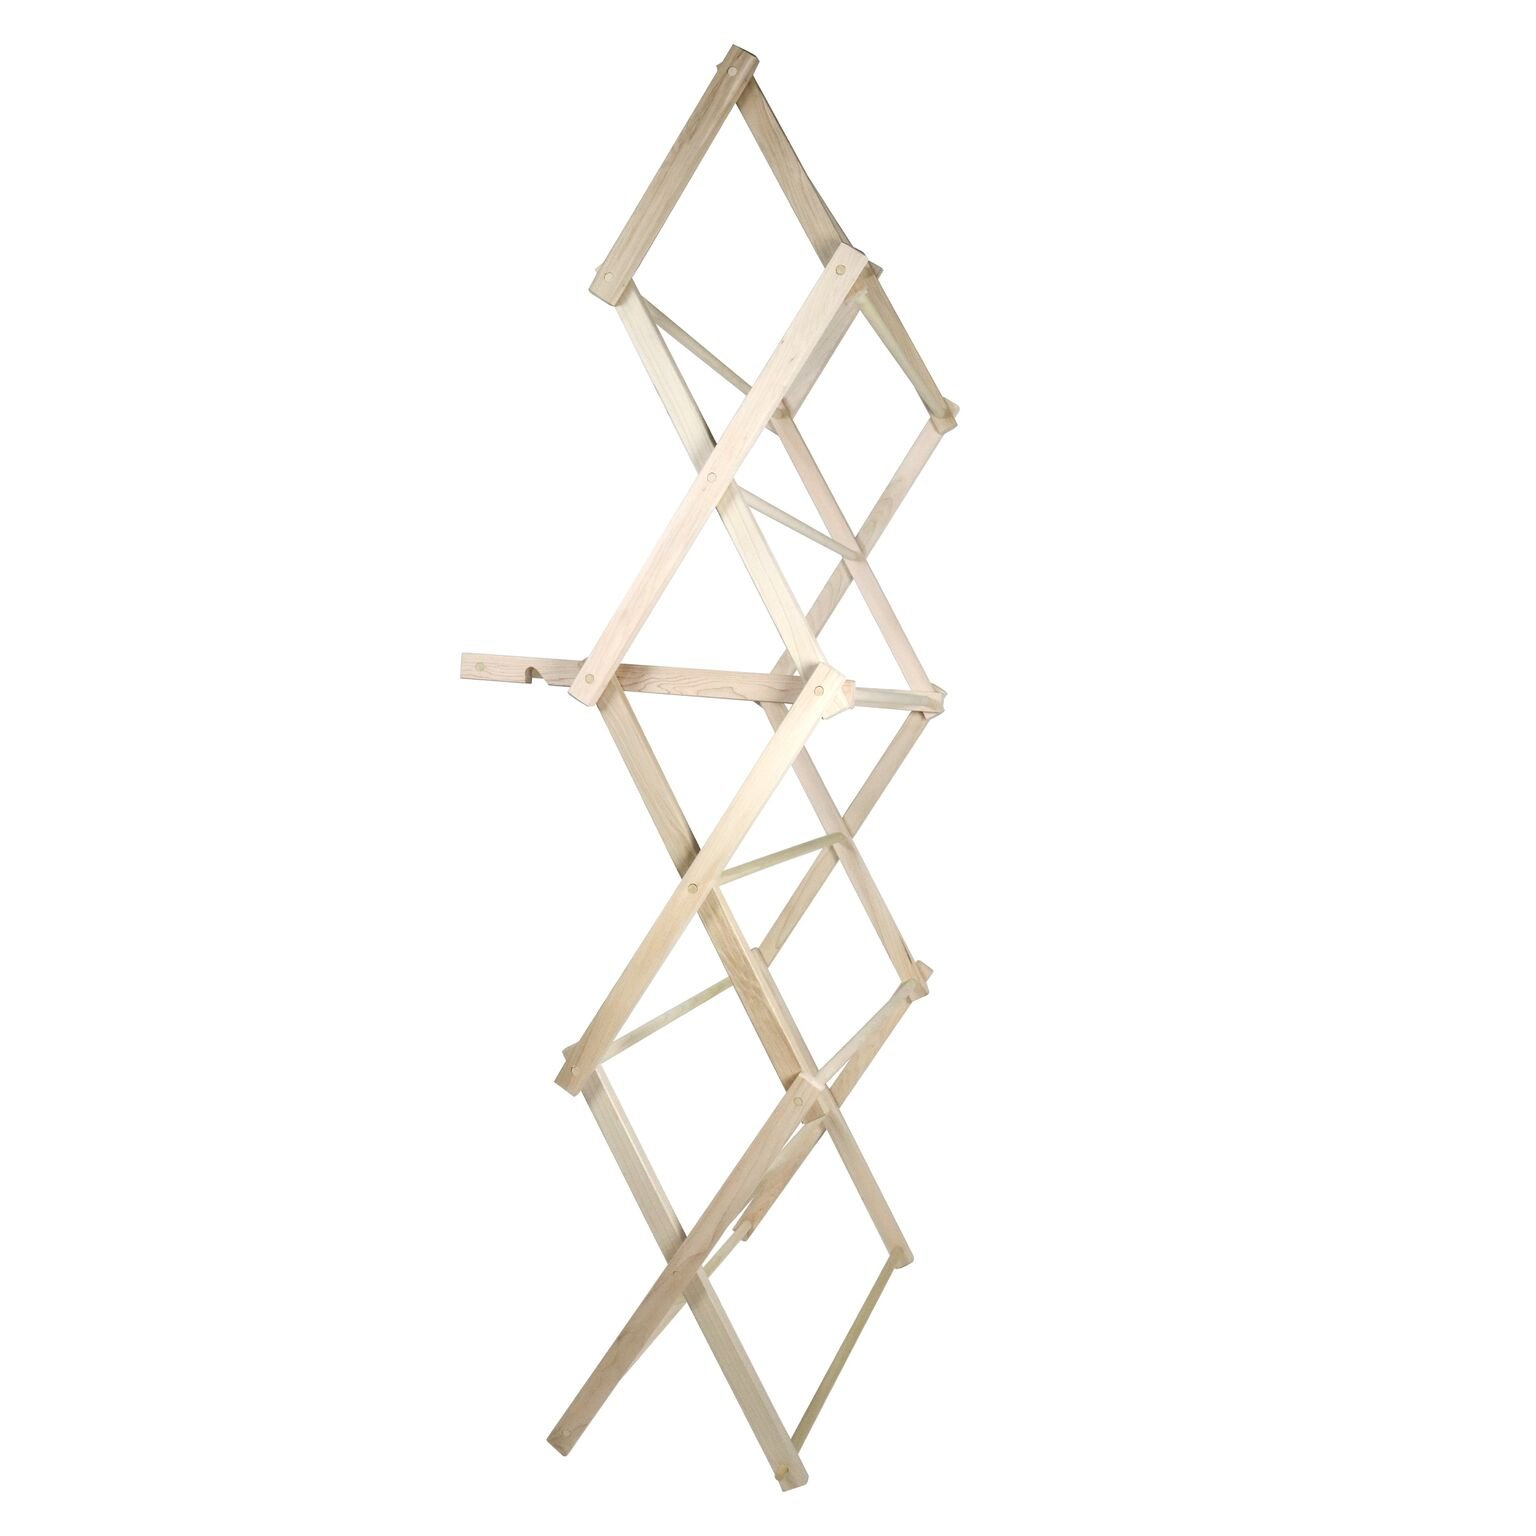 """LifeSong Milestones American Made Clothes Drying Rack Collapsible Folding Two Height Wooden Quilt Rack 36'' x 28'' x 7.5"""" 100% hardwood Made in the USA (36'') by LifeSong Milestones (Image #3)"""